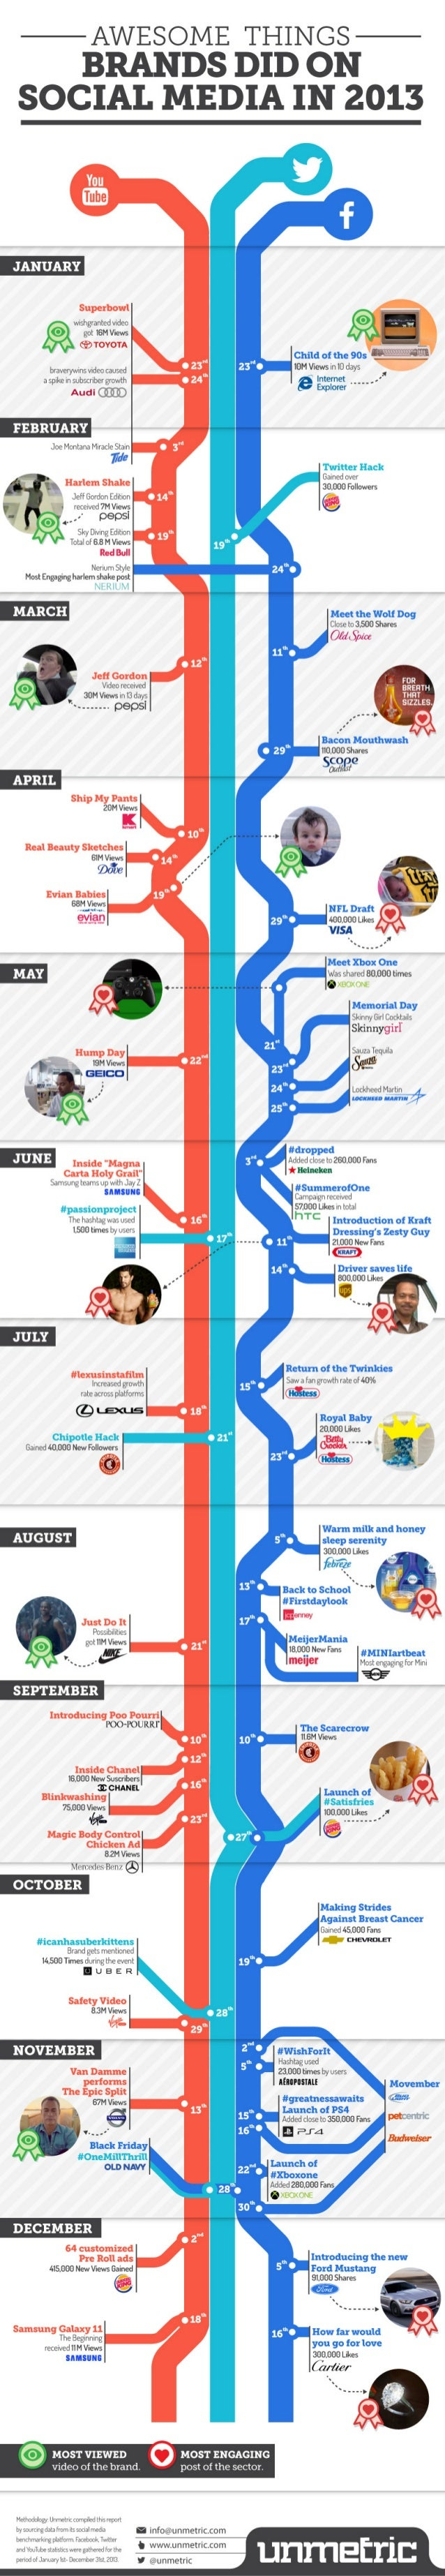 Awesome things Brands did on Social Media in 2013 [INFOGRAPHIC]